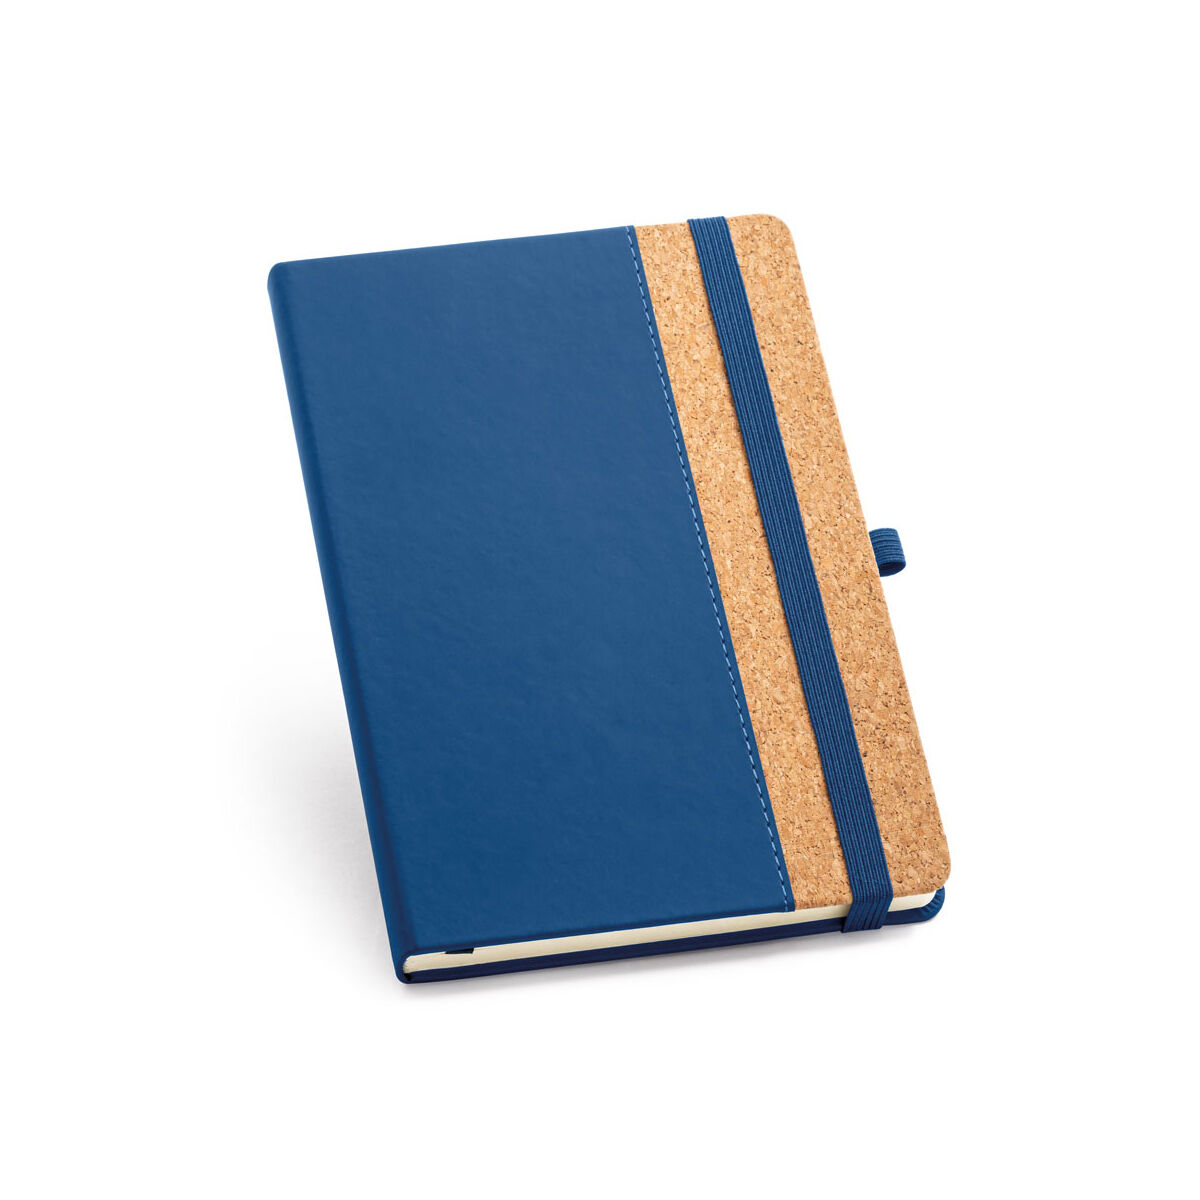 A5 Notebook with PU and Cork Cover in Blue Colour